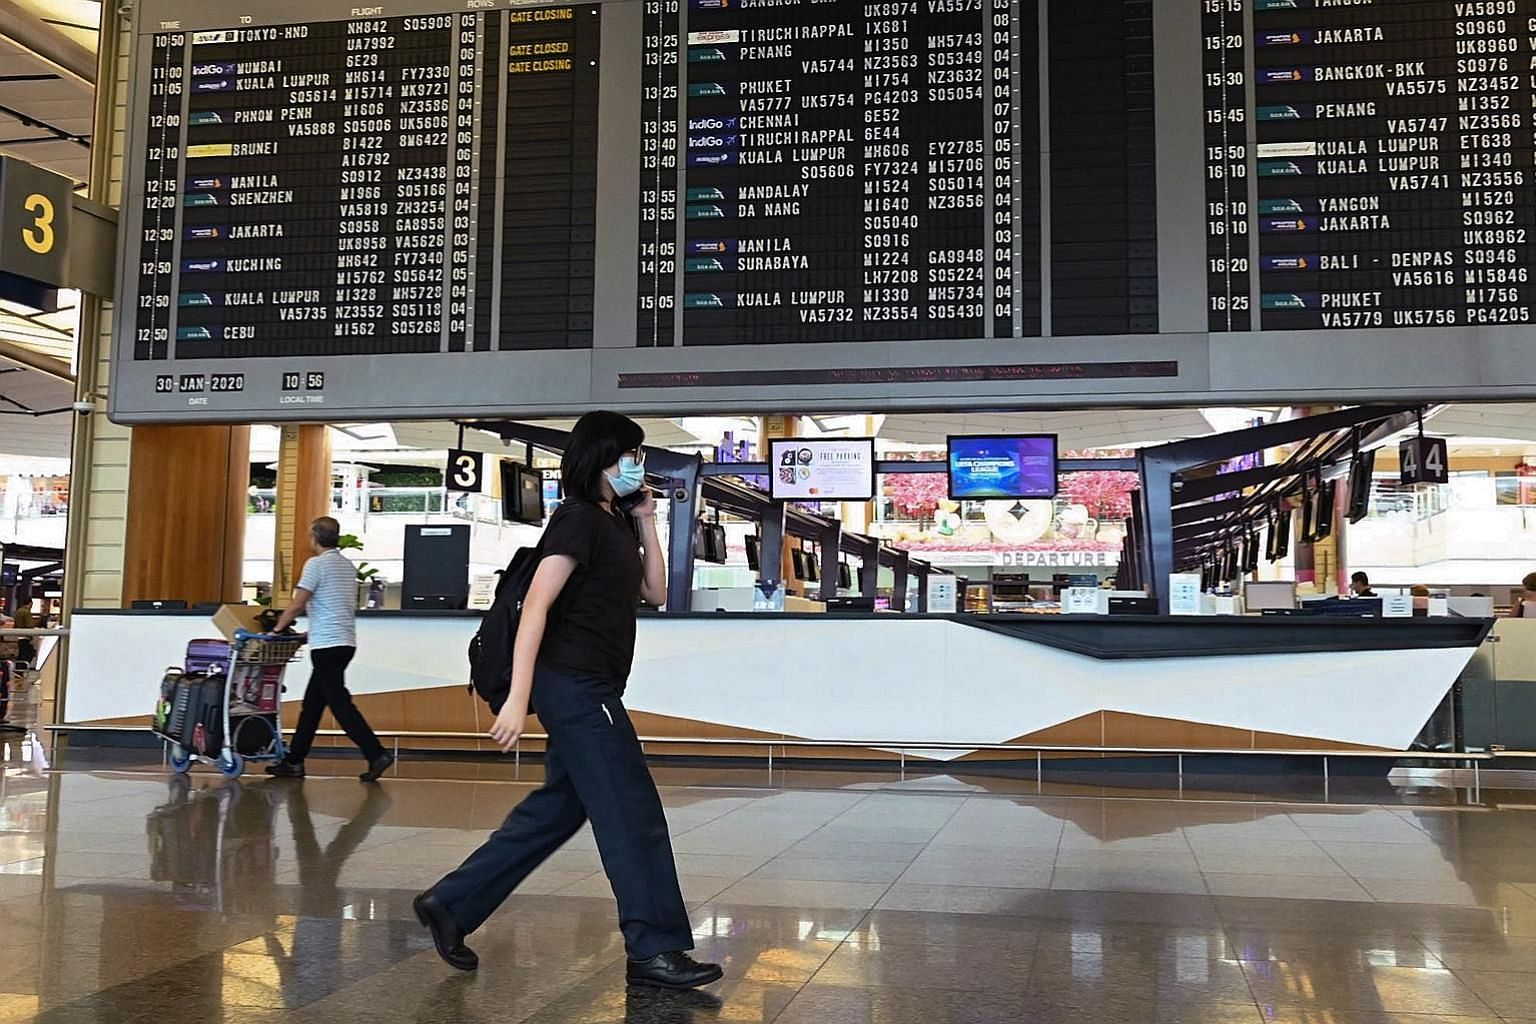 The departure hall of Singapore's Changi Airport. The writer says that as a small economy at the centre of Asia, Singapore cannot fully escape exposures such as climate change and public health issues like the current coronavirus outbreak.